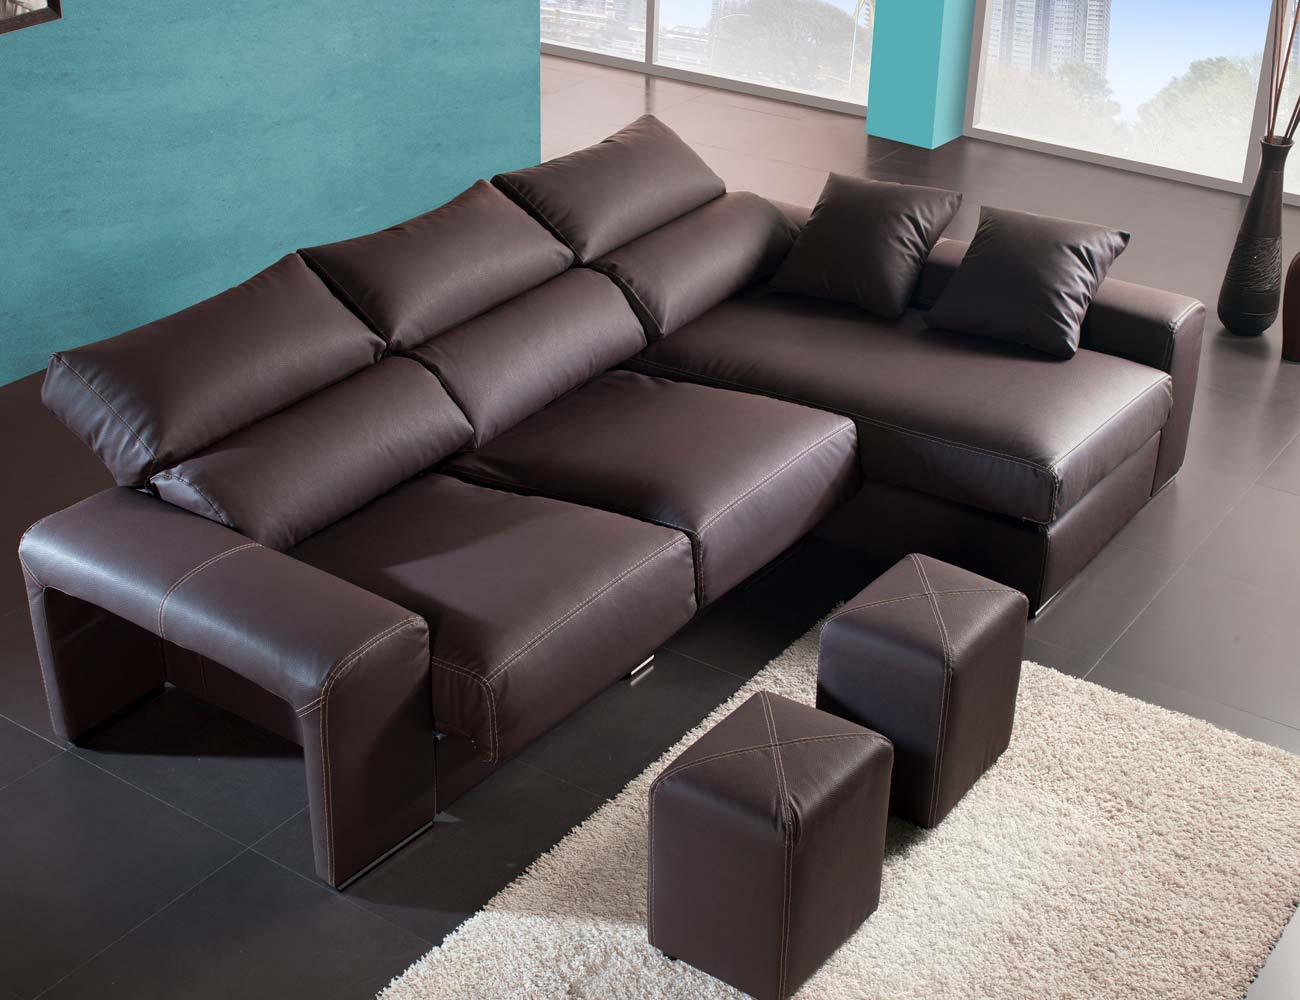 Sofa chaiselongue moderno polipiel chocolate poufs taburetes66